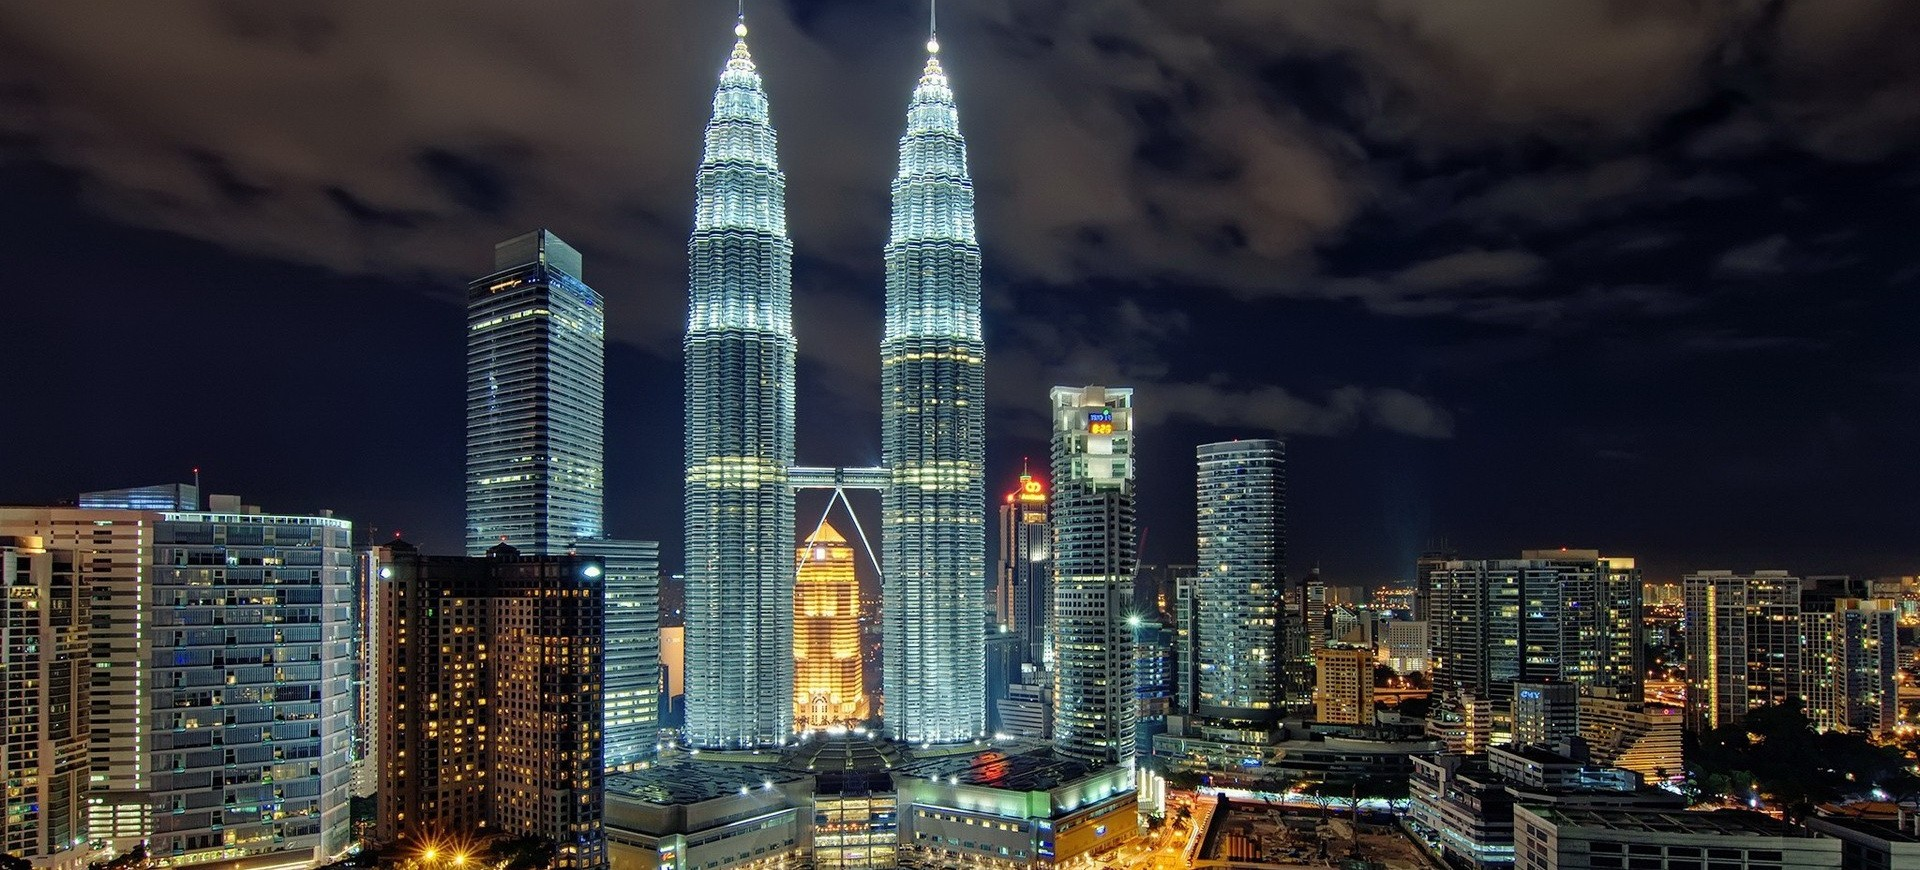 Malaisie Kualalumpur Tours Petronas by night